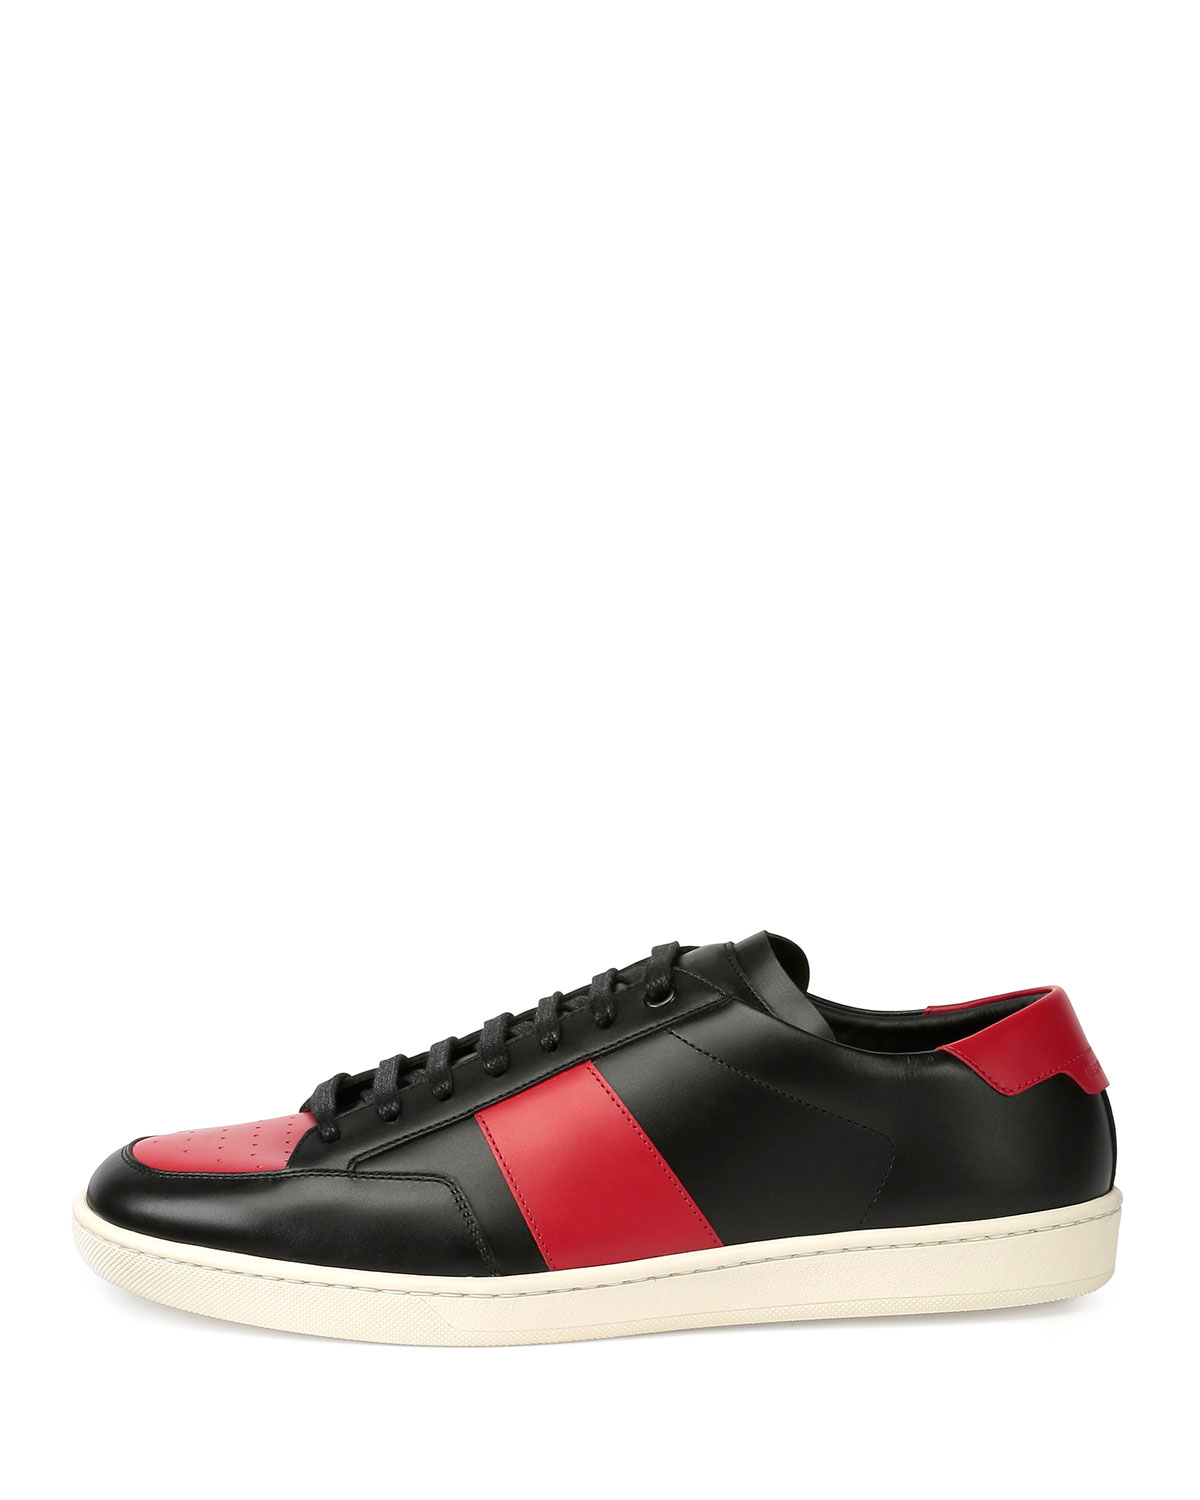 saint laurent sl 10h leather low top sneaker in red lyst. Black Bedroom Furniture Sets. Home Design Ideas